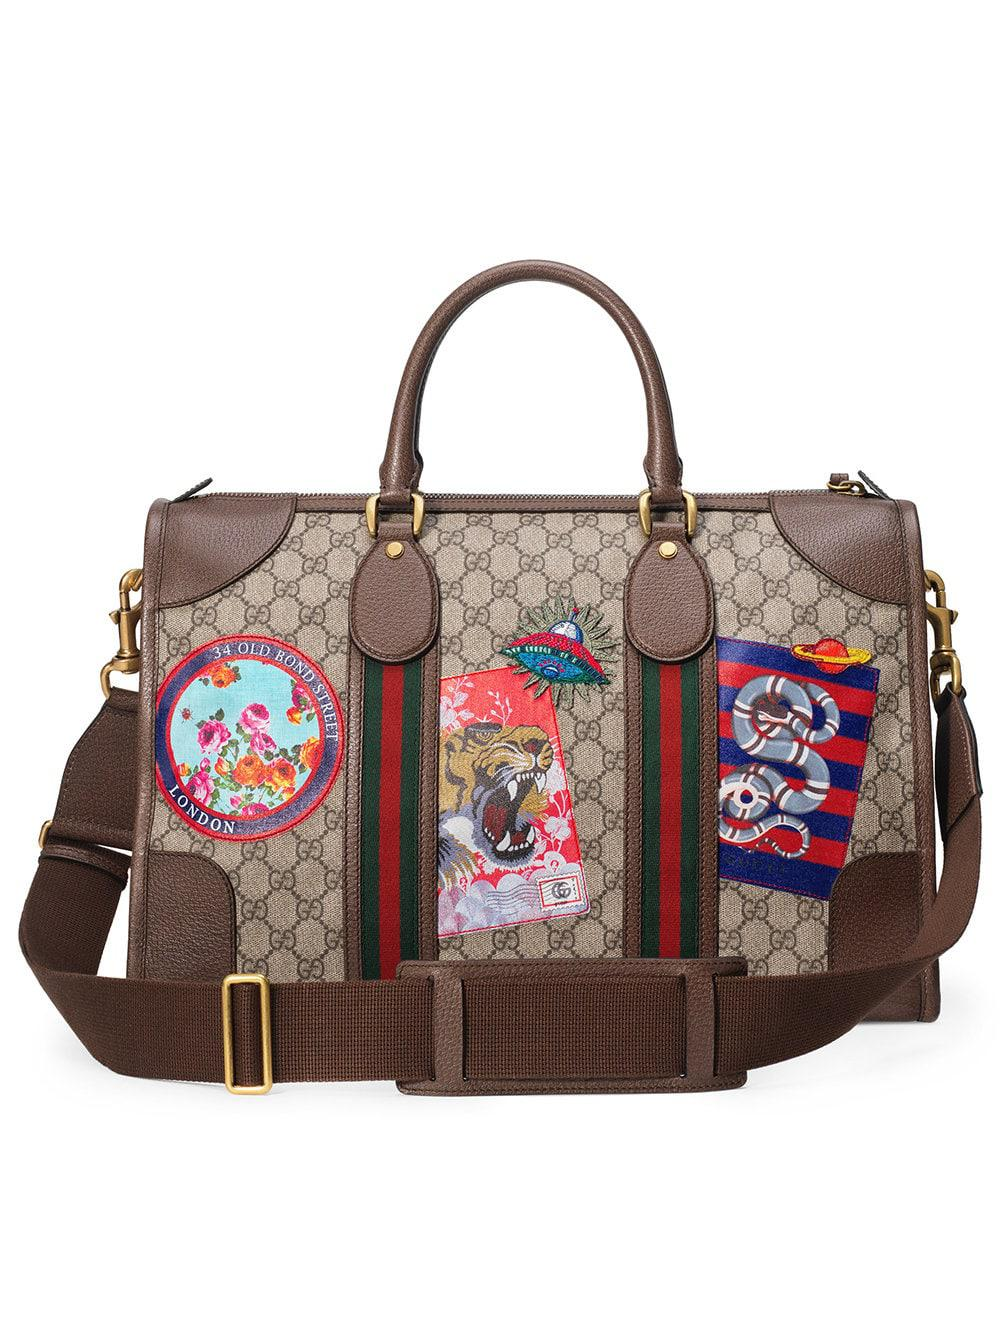 798e512edf8af4 Gucci - Multicolor Leather Courrier GG Supreme Duffle Bag for Men - Lyst.  View fullscreen